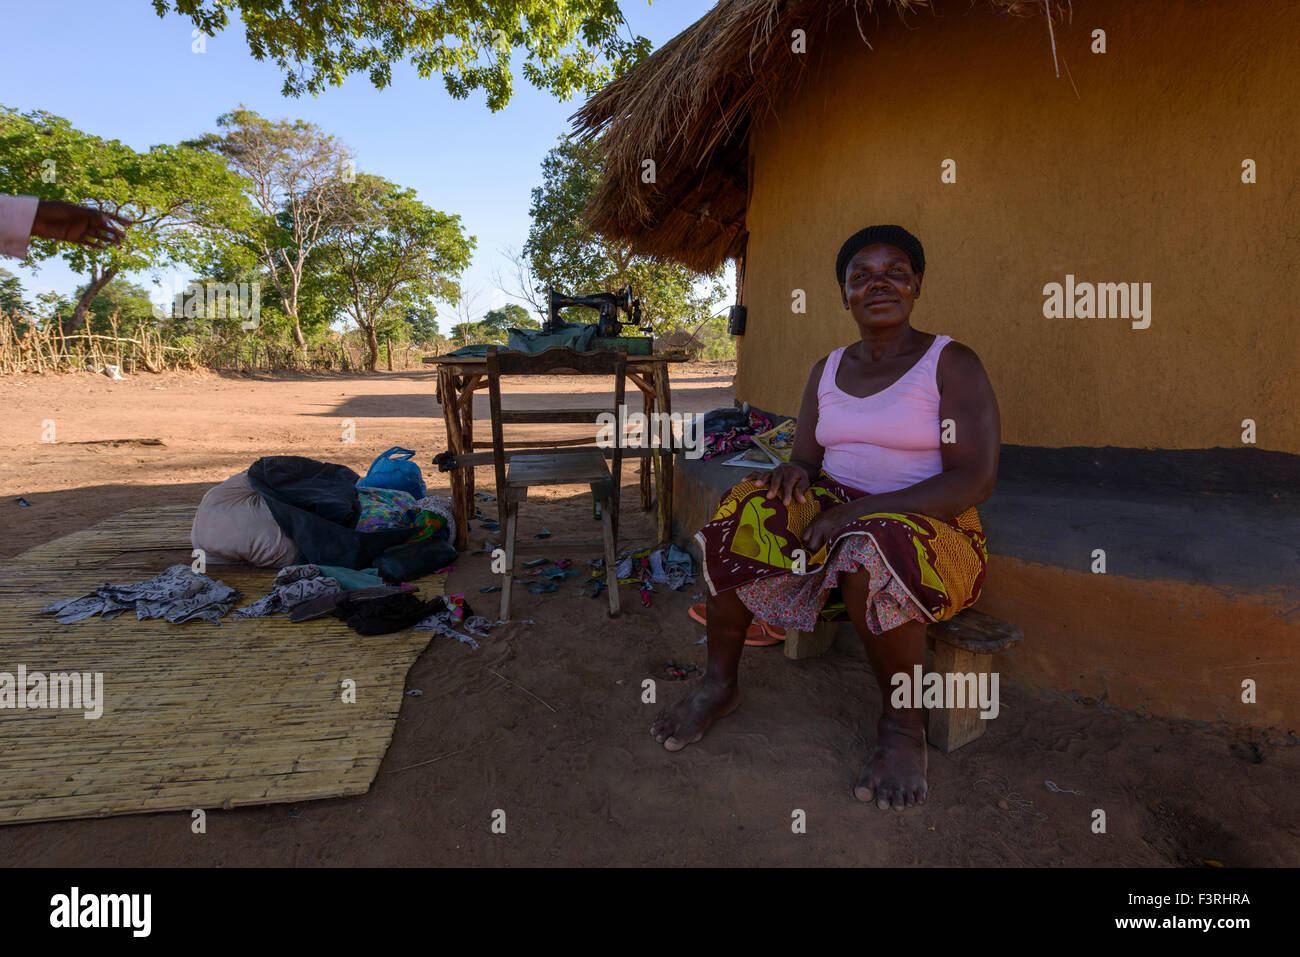 Seamstress sitting in front of a house, Zambia, Africa - Stock Image